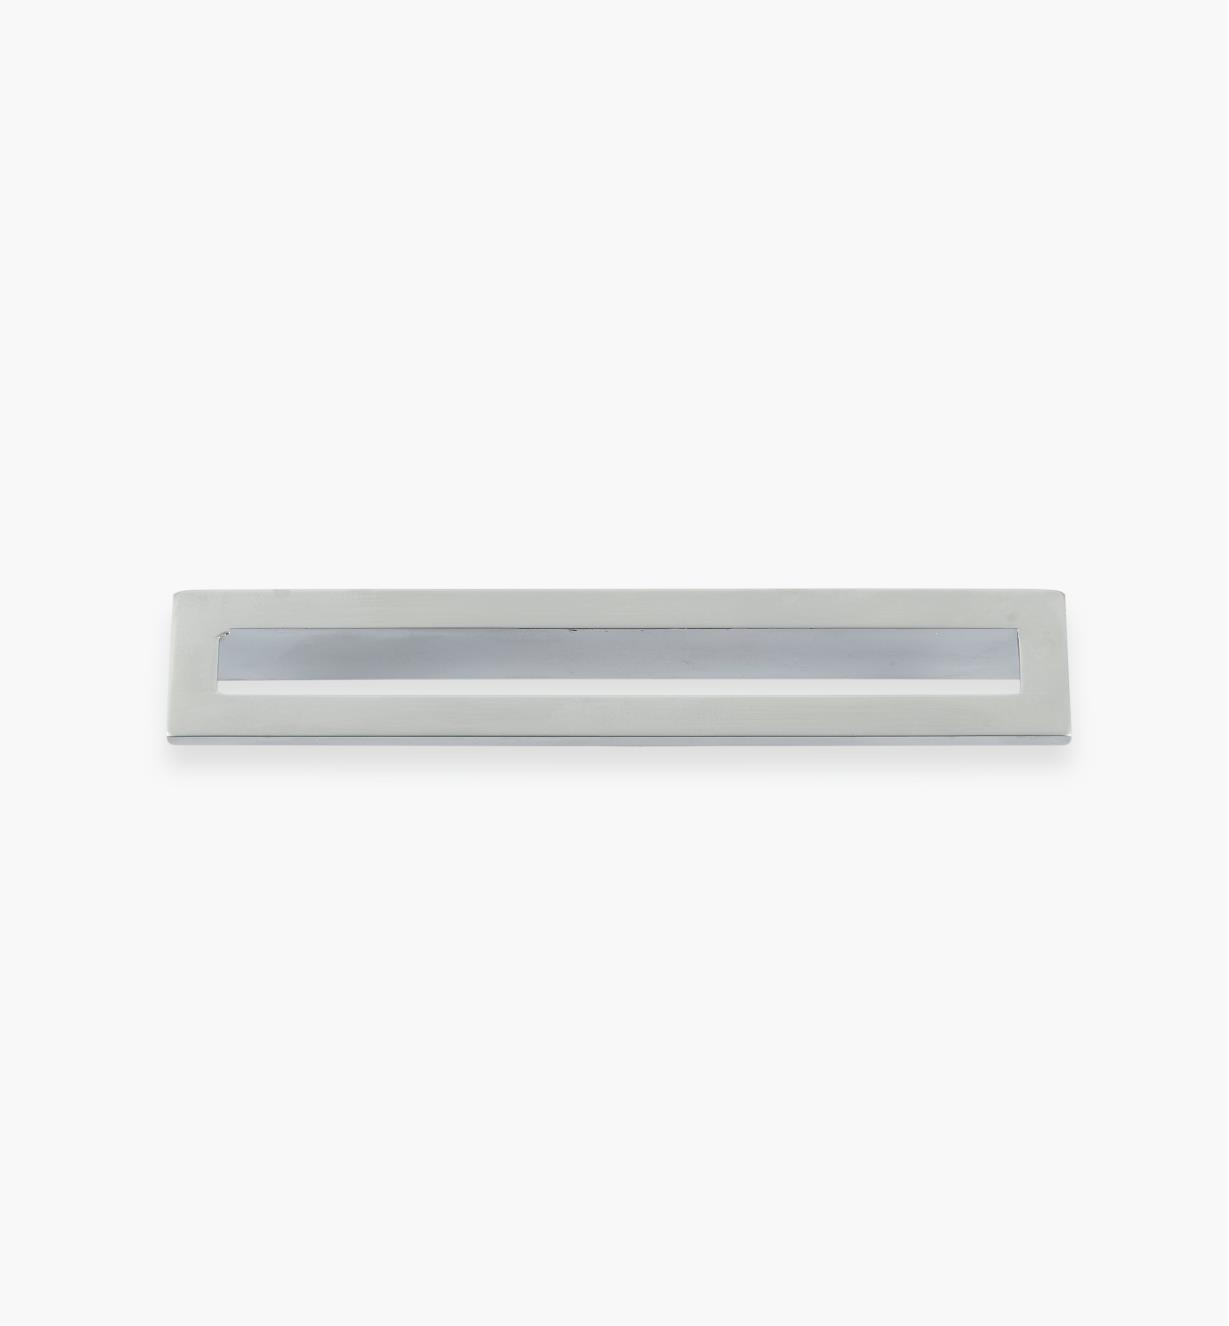 01G1894 - 128mm x 134mm Matte Chrome Core Handle, each